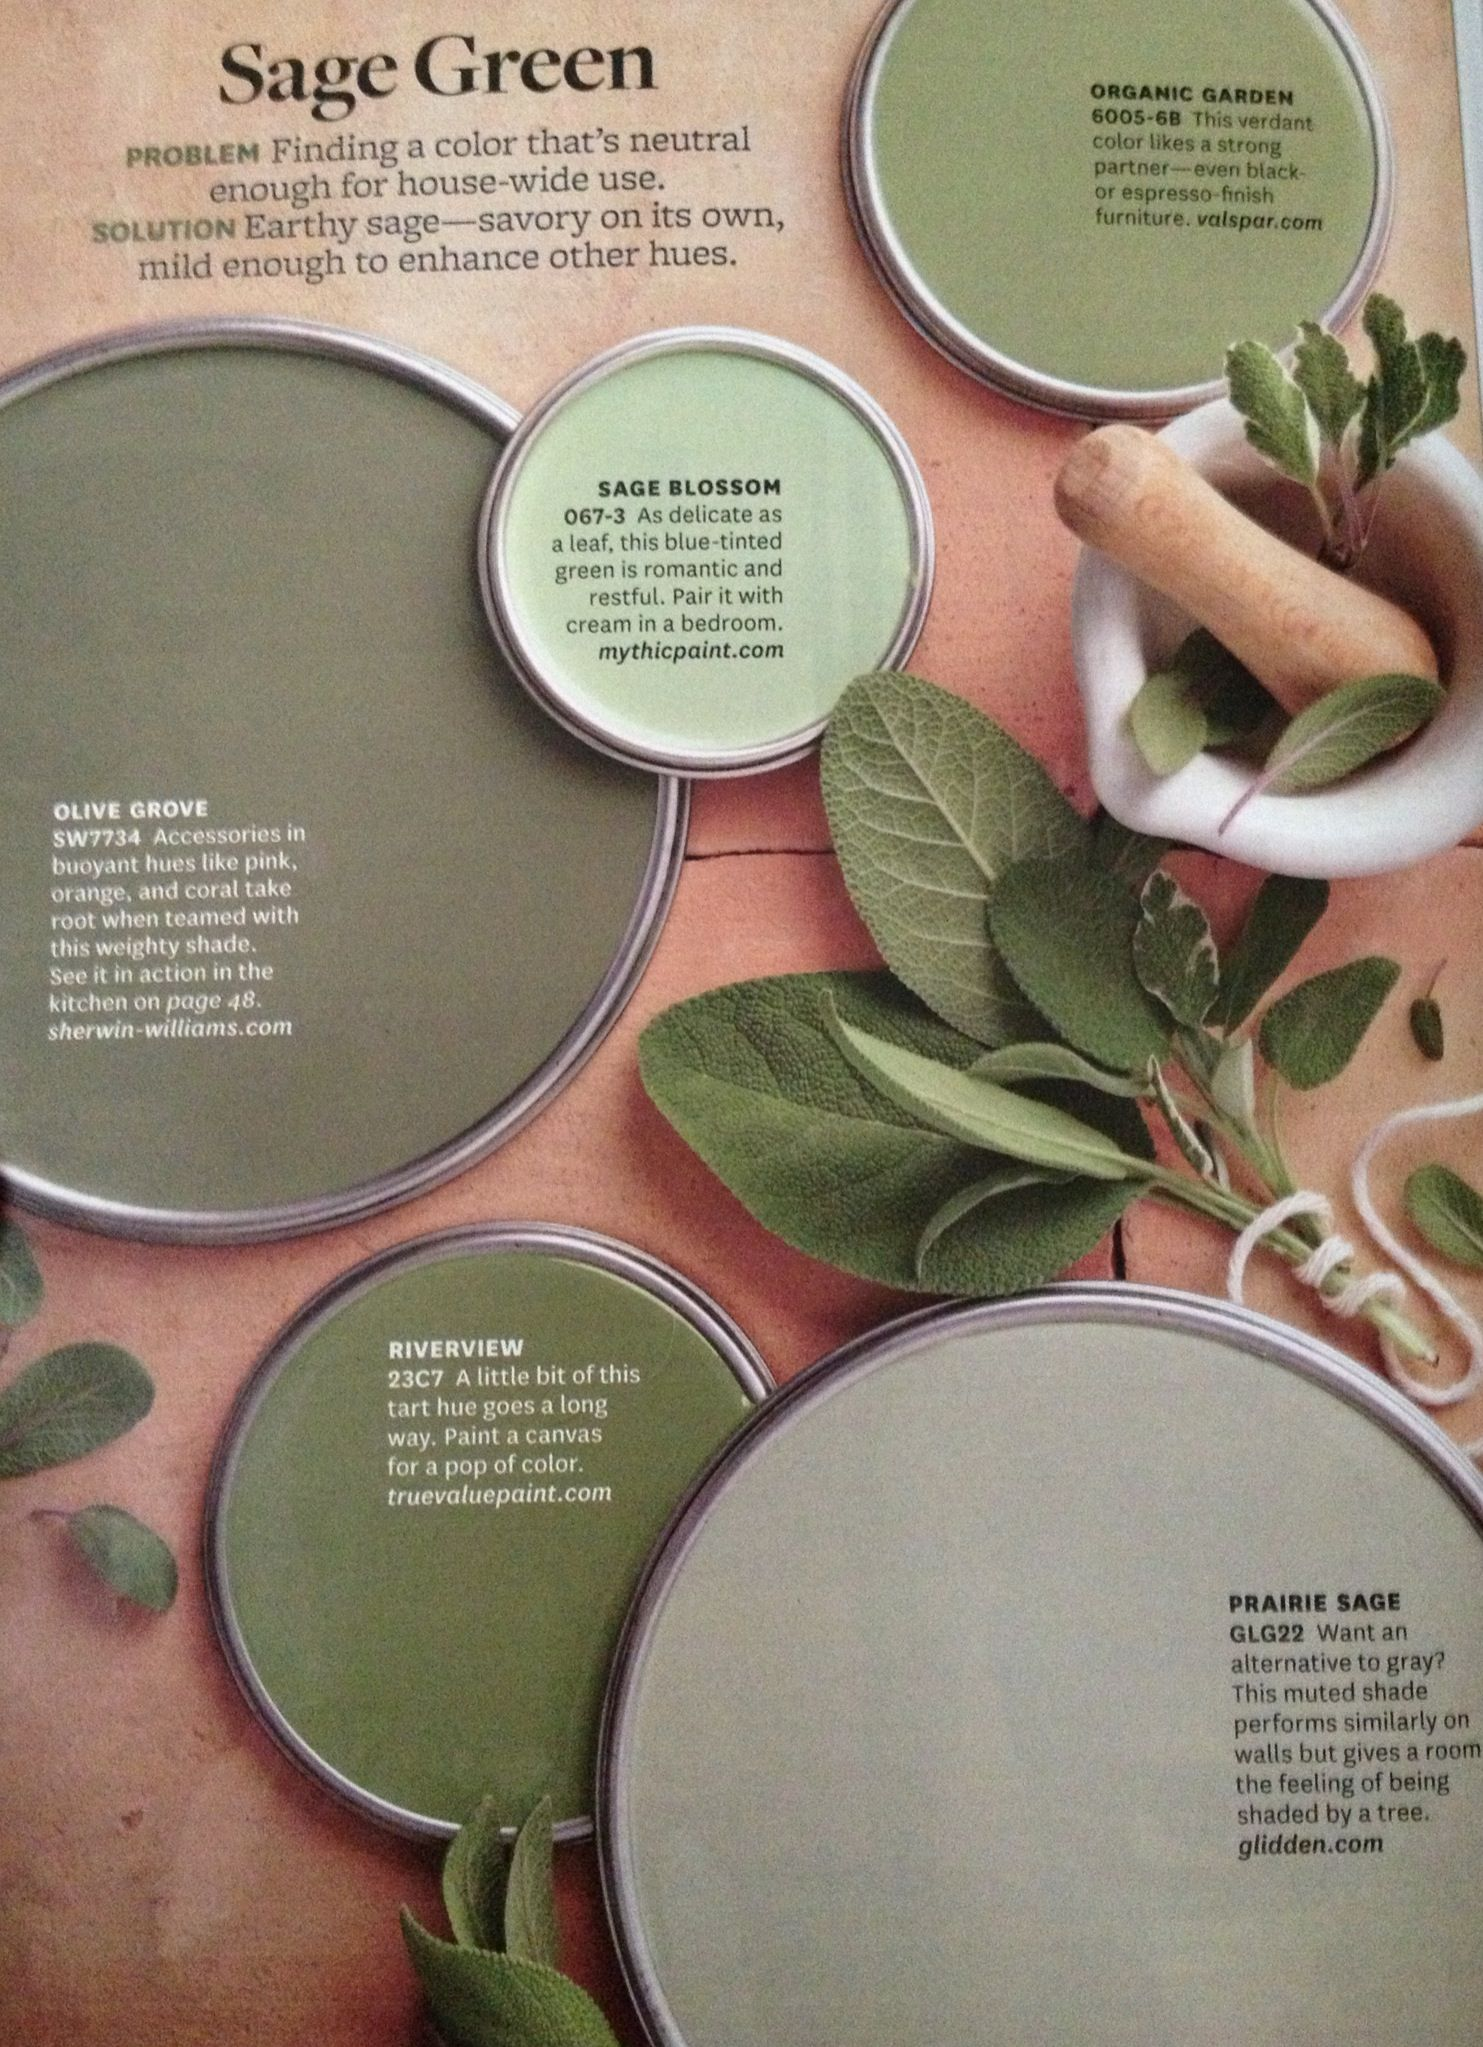 better homes and garden - sage green paint colors- i like sage